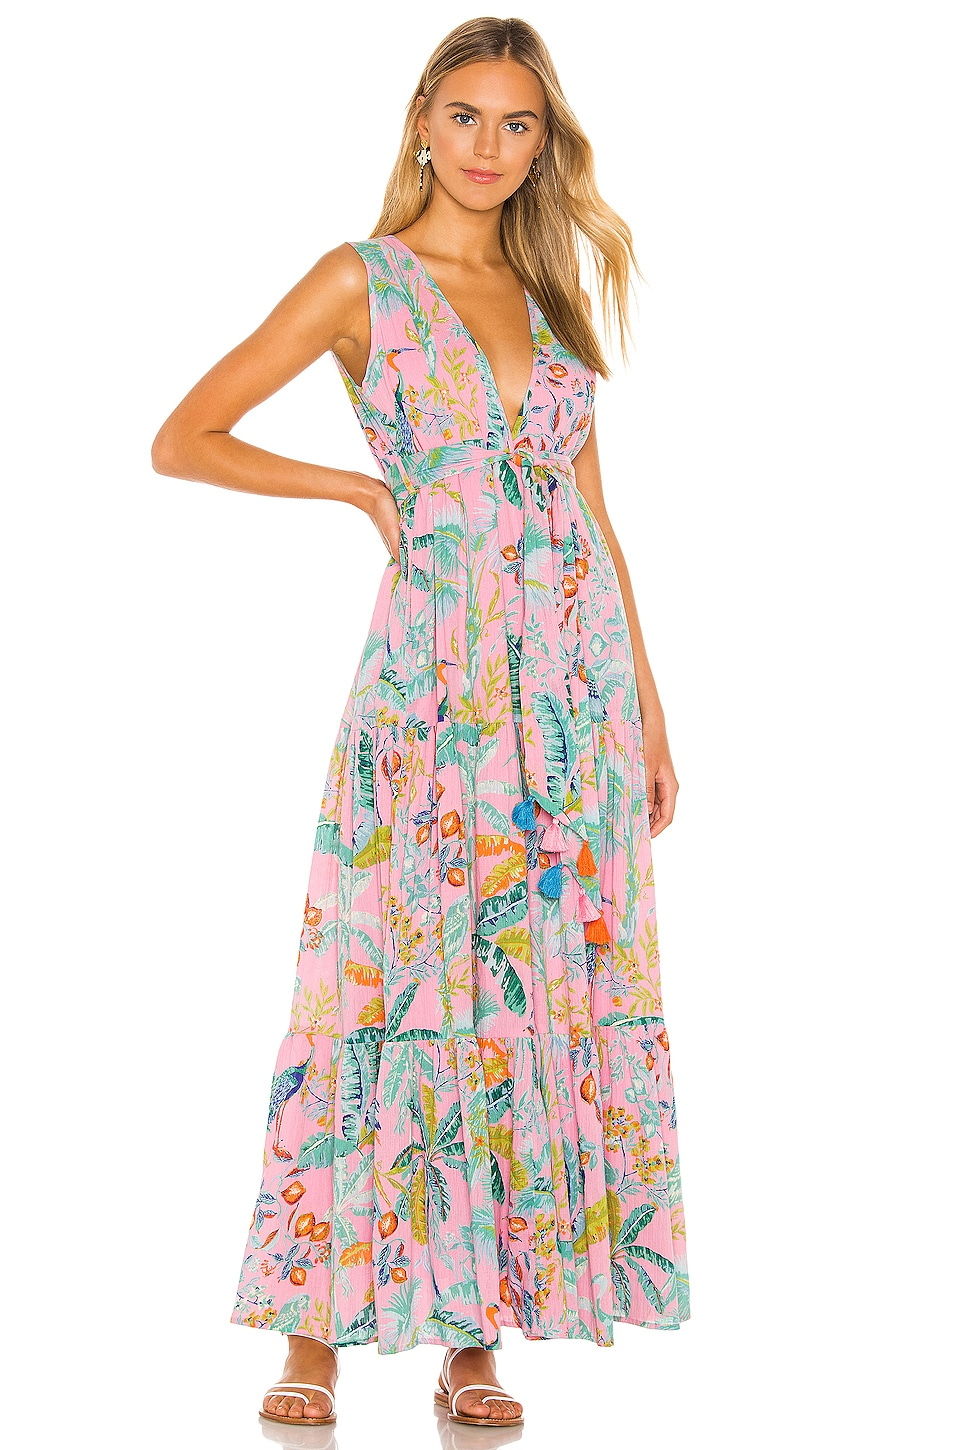 Banjanan Carlota Maxi Dress in Lisbon Garden Wild Rose